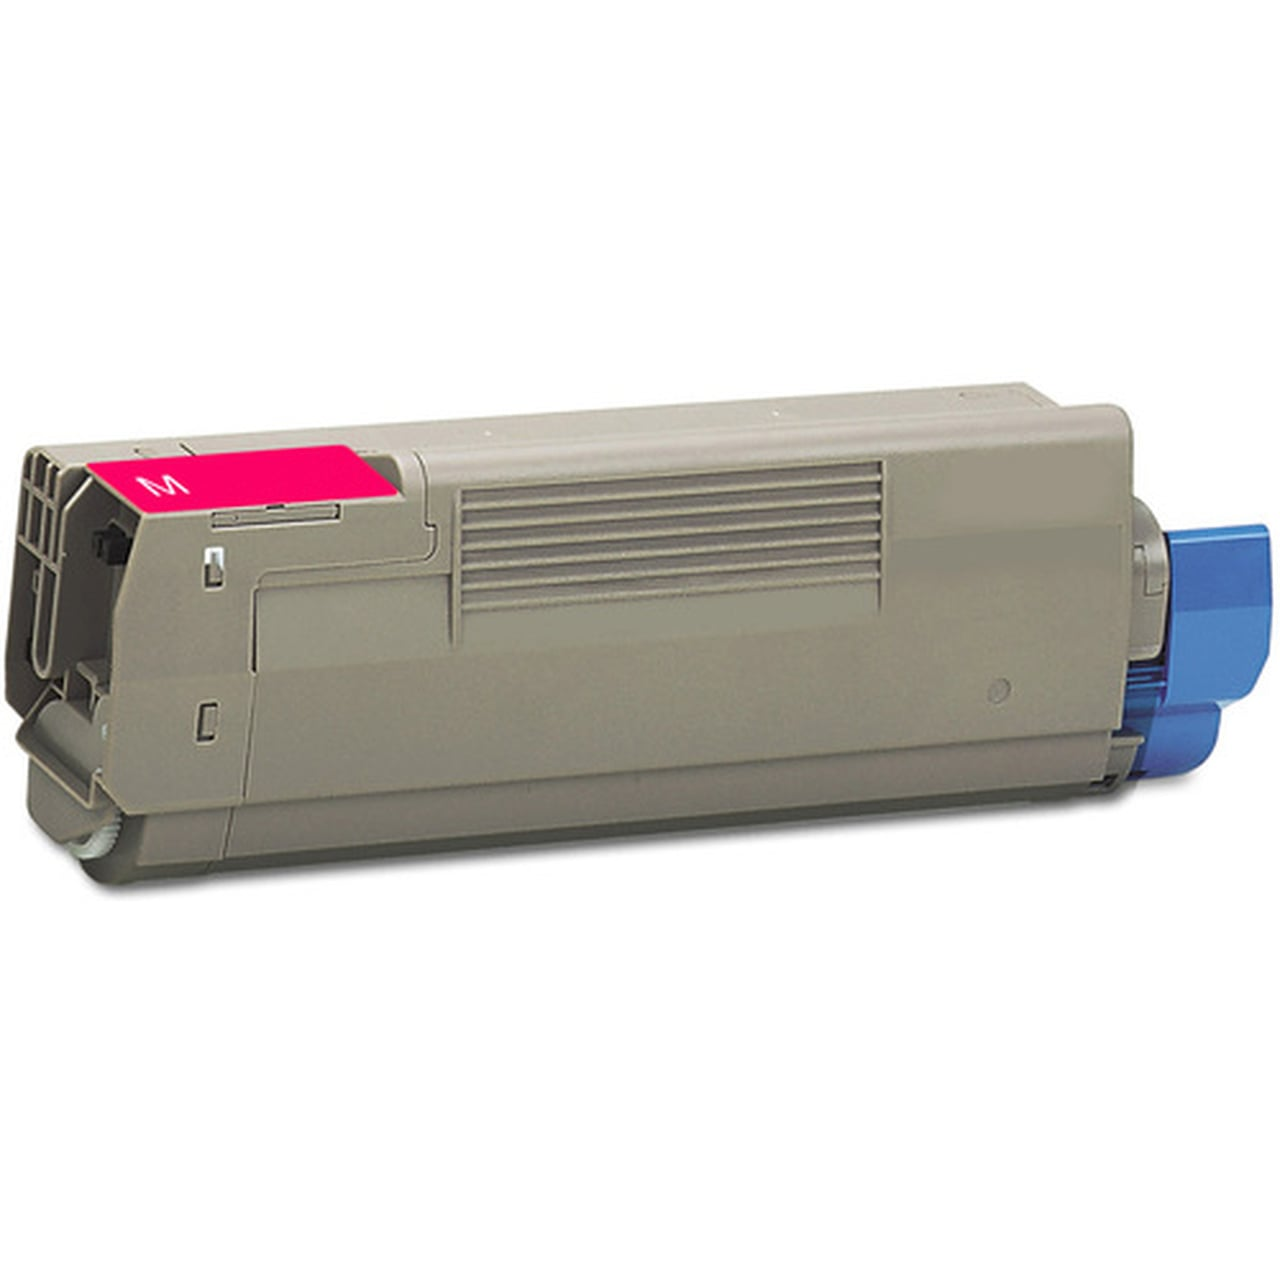 43034802 Toner Cartridge - Okidata Remanufactured (Magenta)